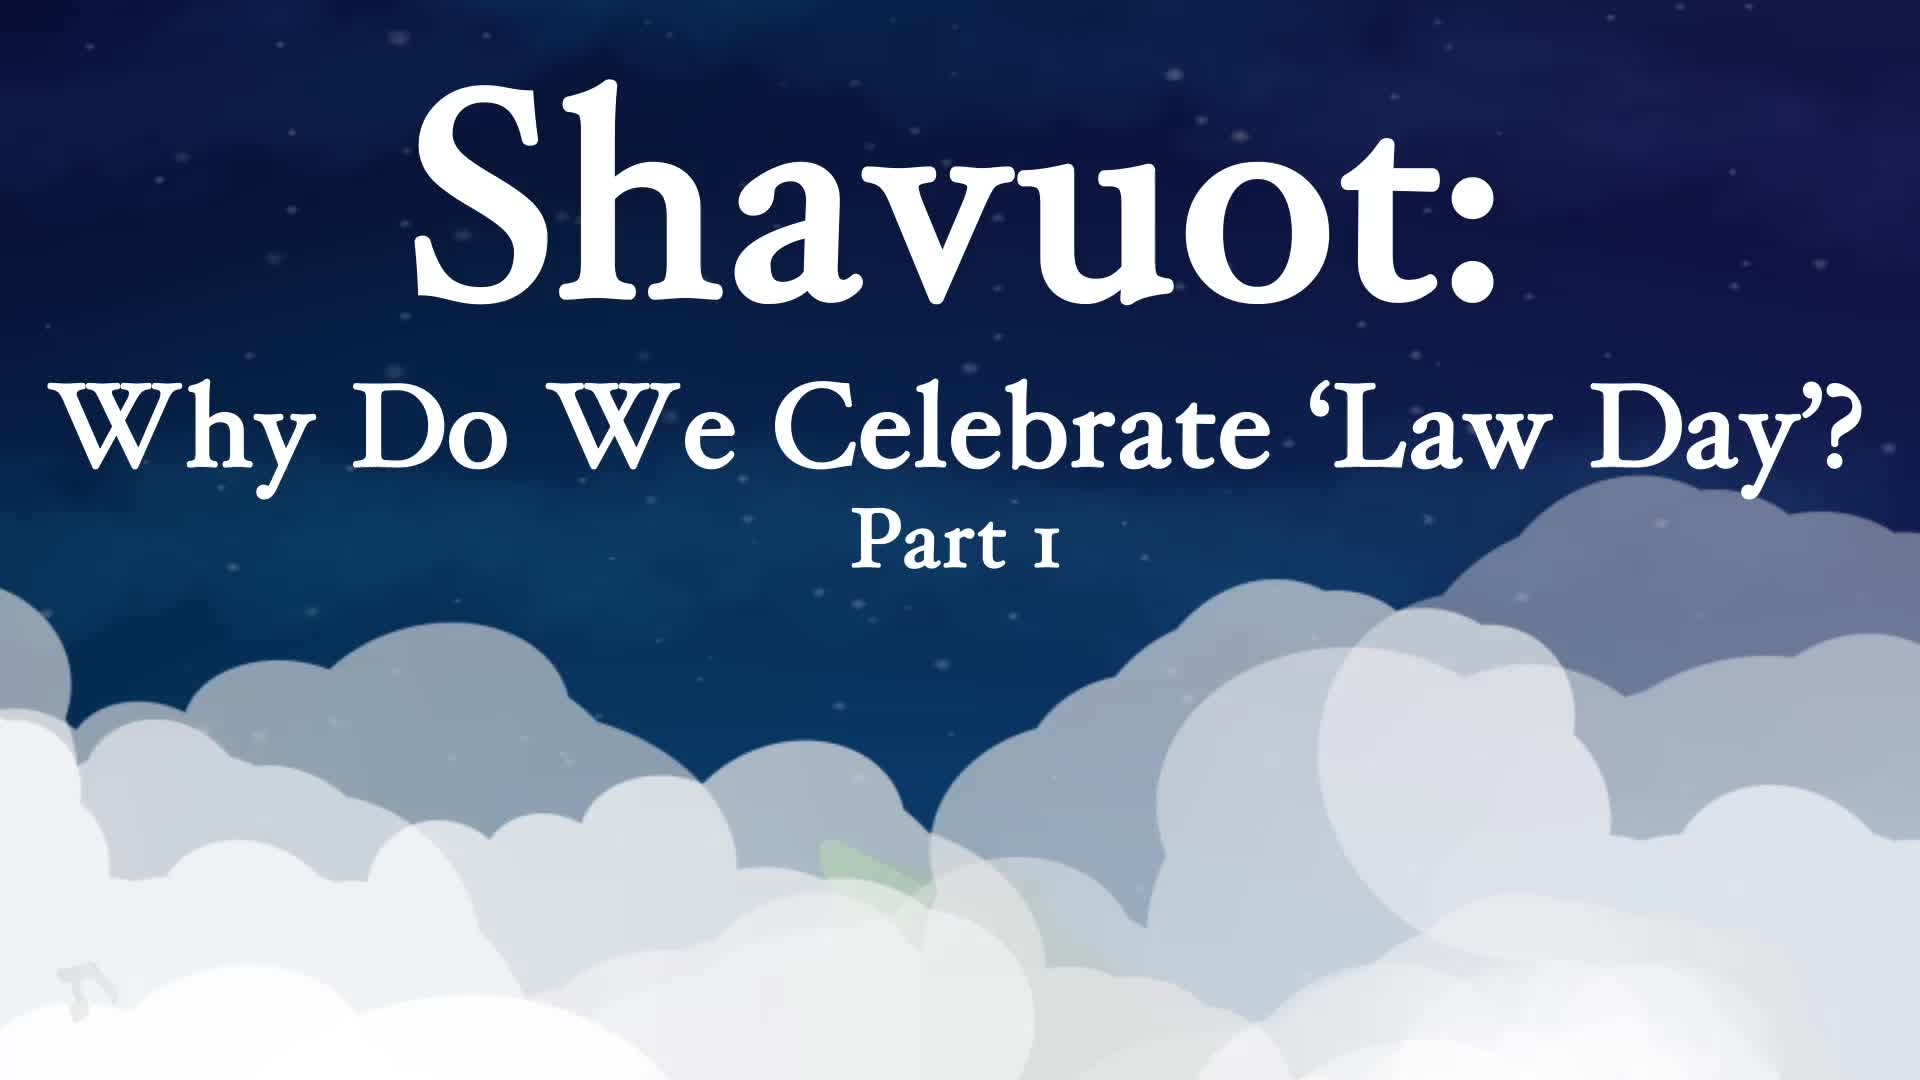 Why Do We Celebrate 'Law Day'?